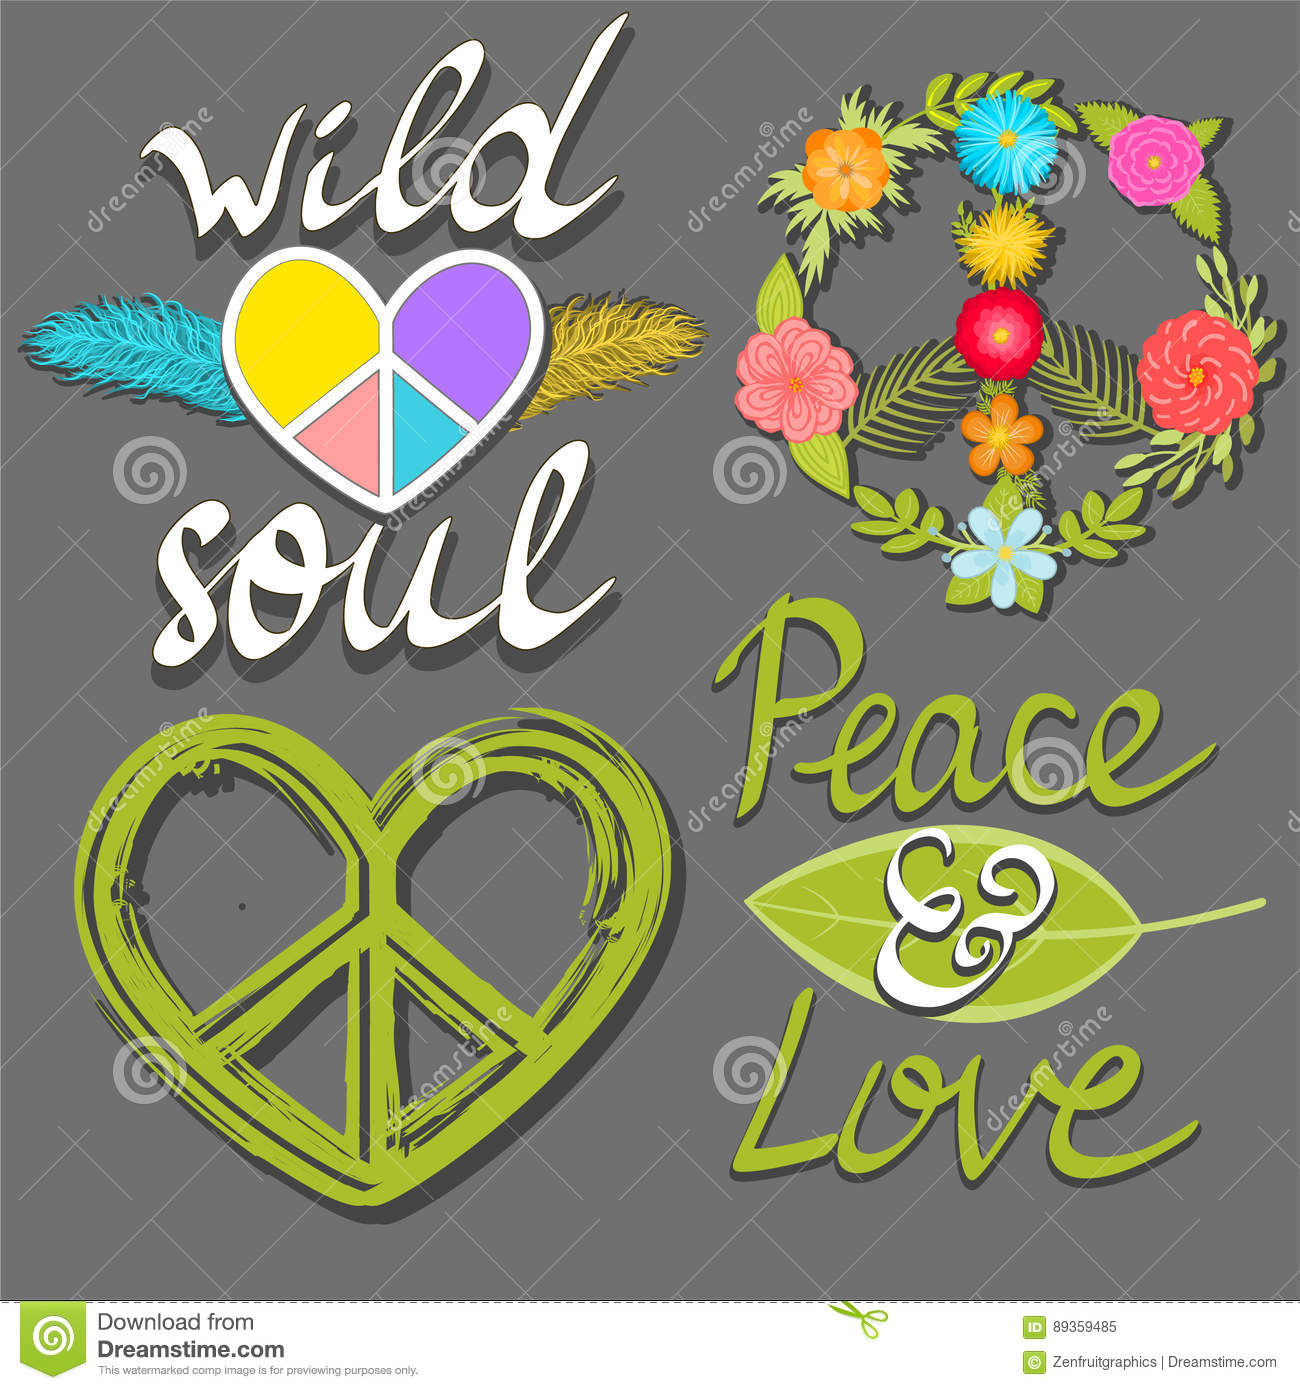 Peace and love wild soul words flower peace symbol and heart peace and love wild soul words flower peace symbol and heart peace sign biocorpaavc